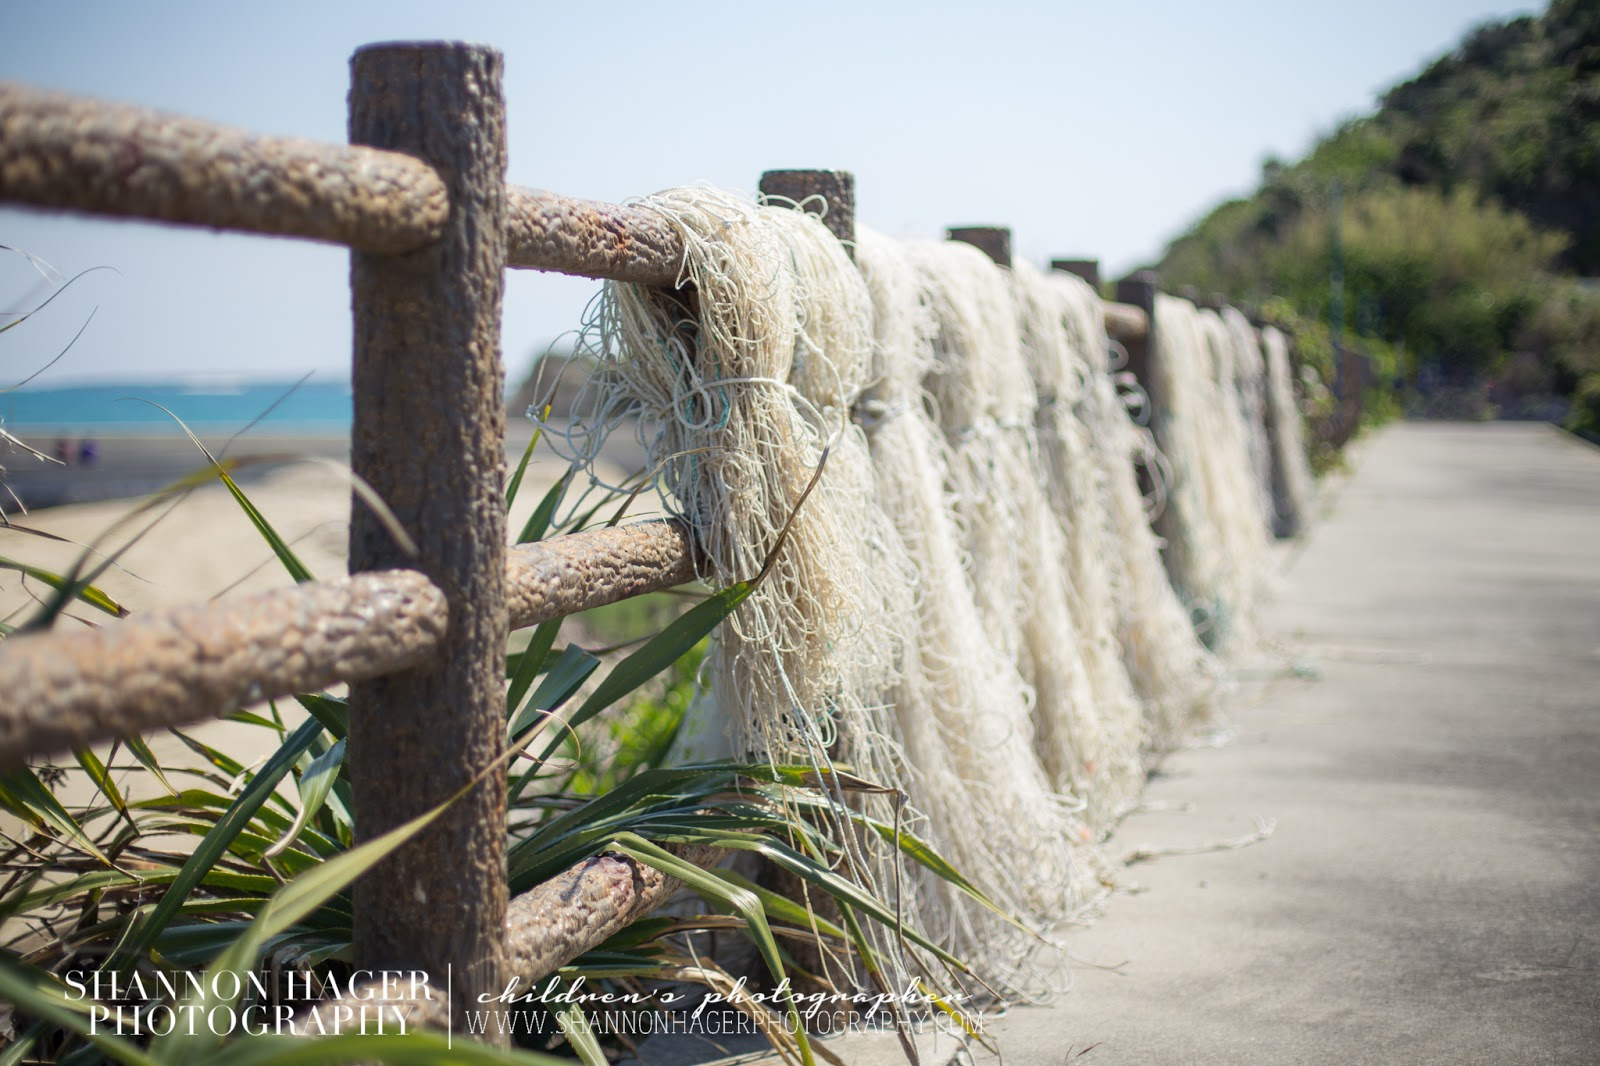 Okinawa Photography by Shannon Hager Photography, fishing nets